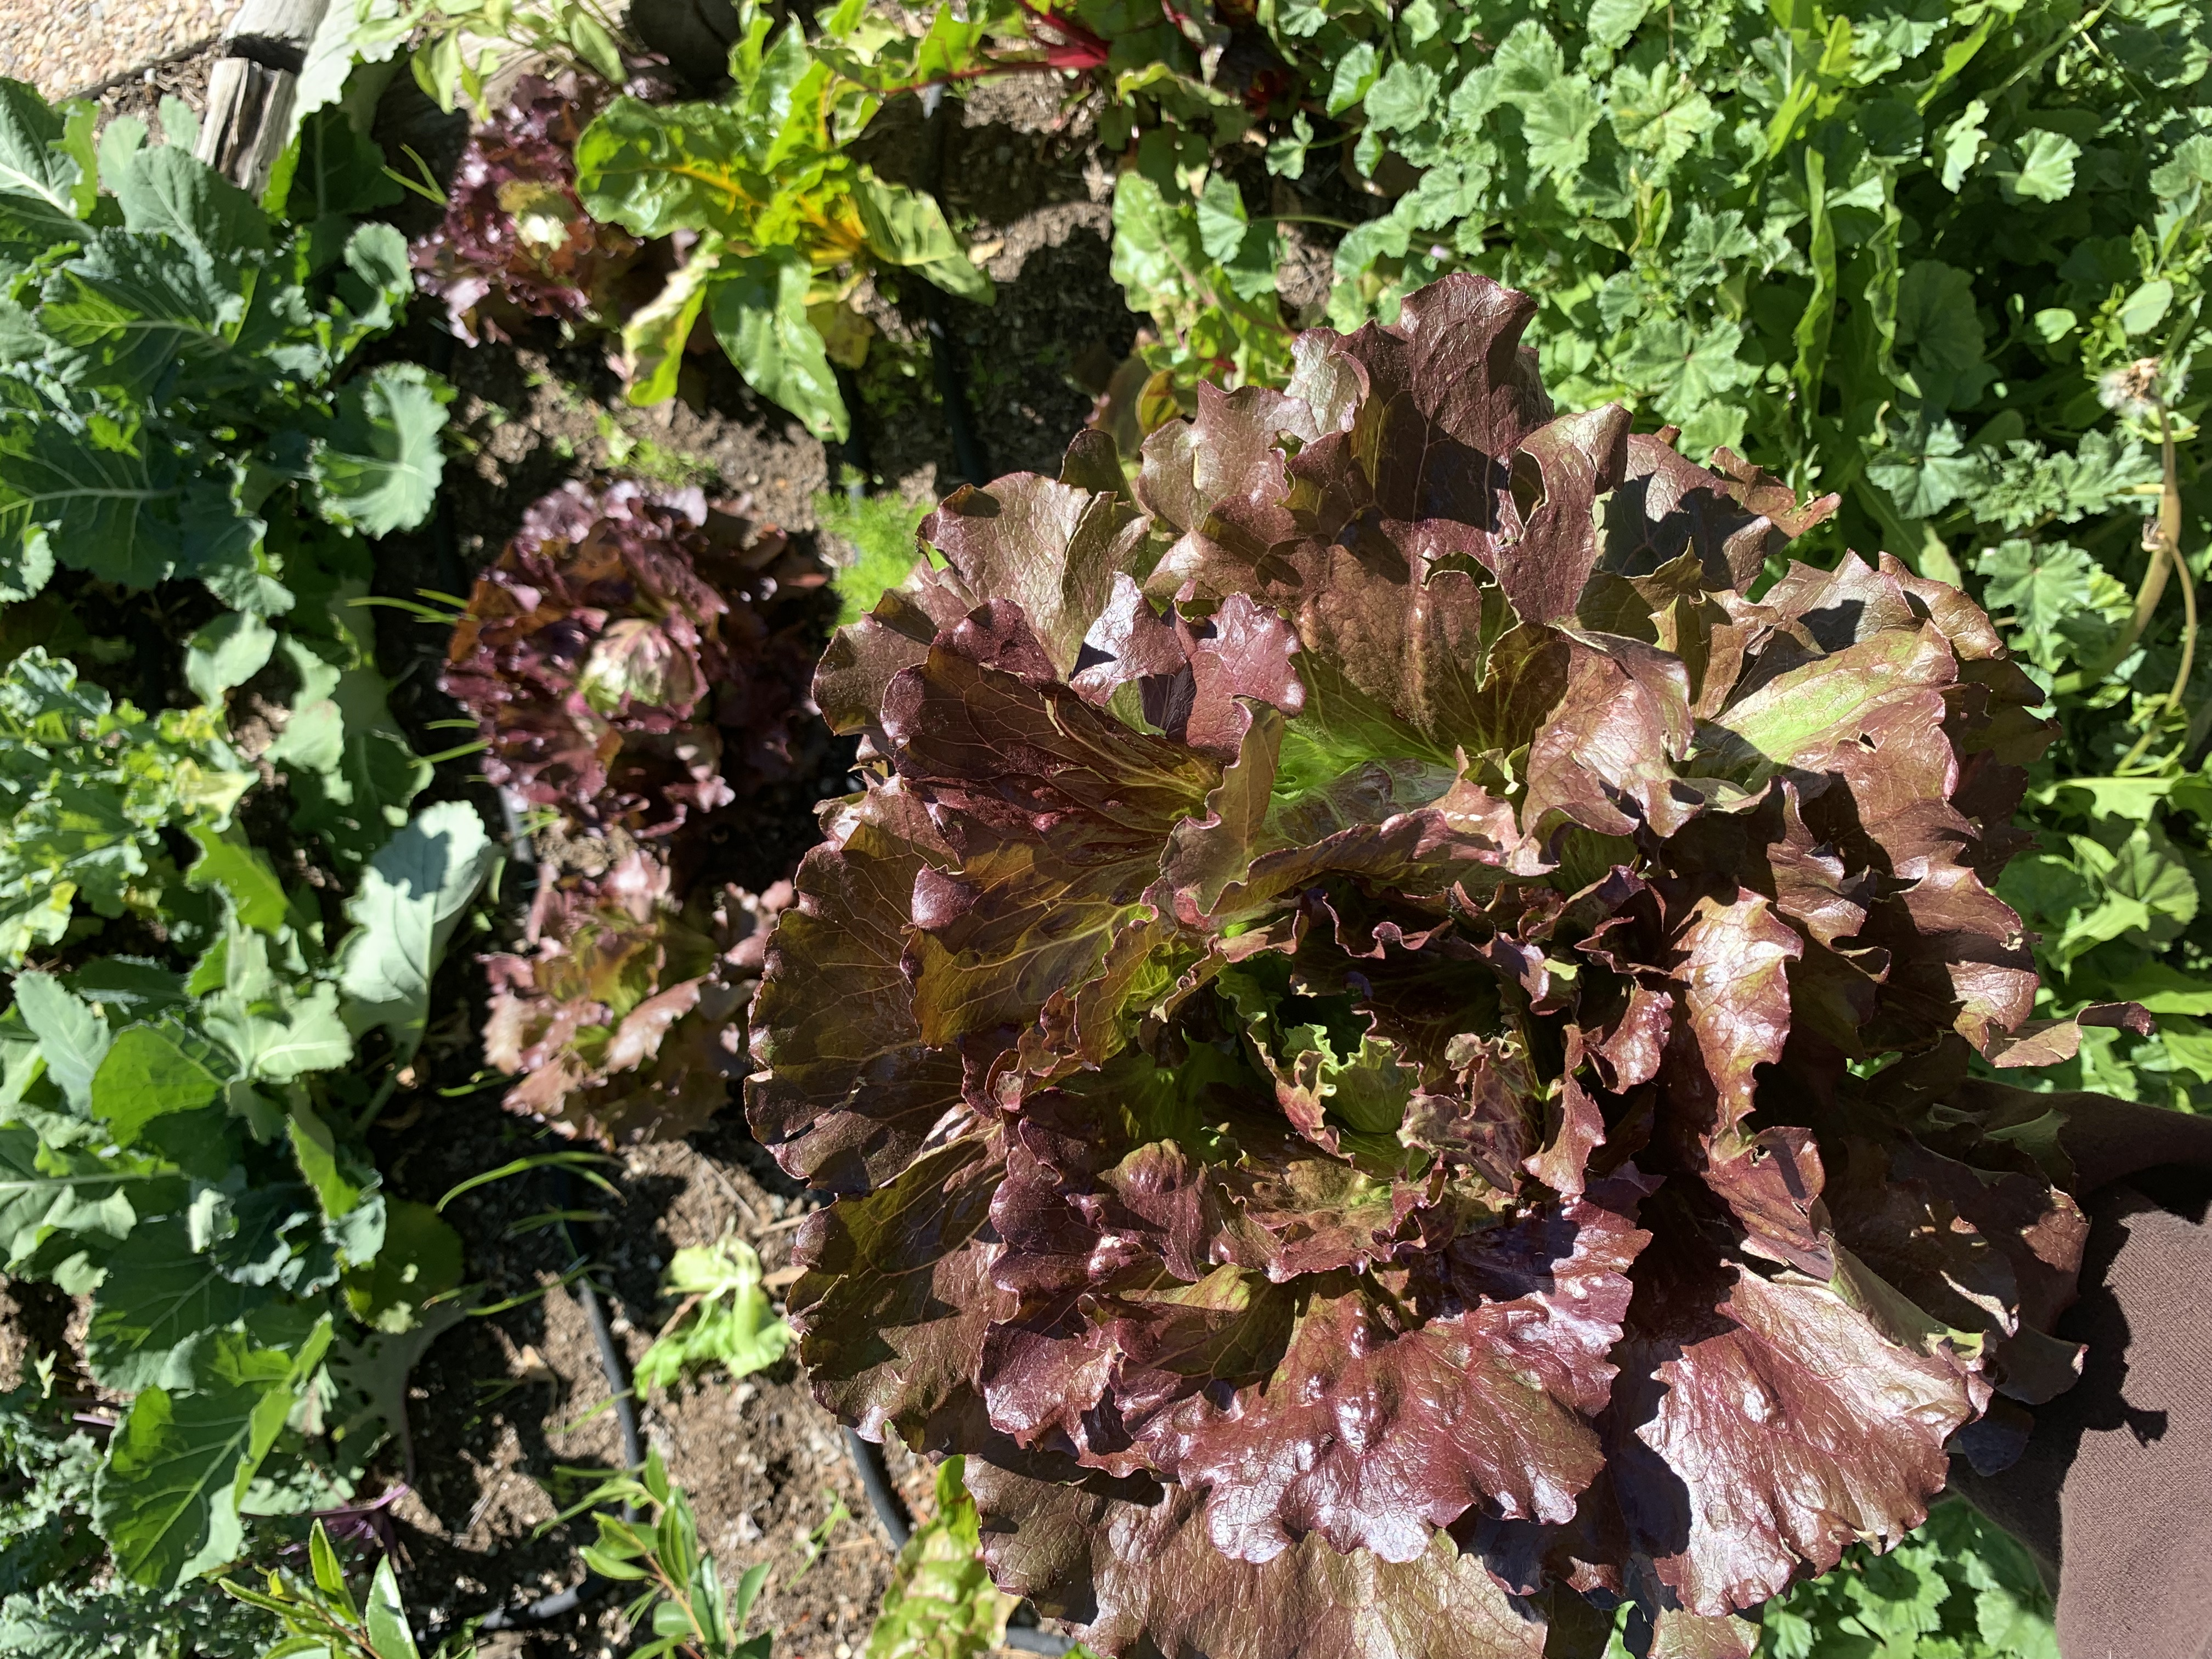 Lettuce heads and Swiss chard grown with local seed